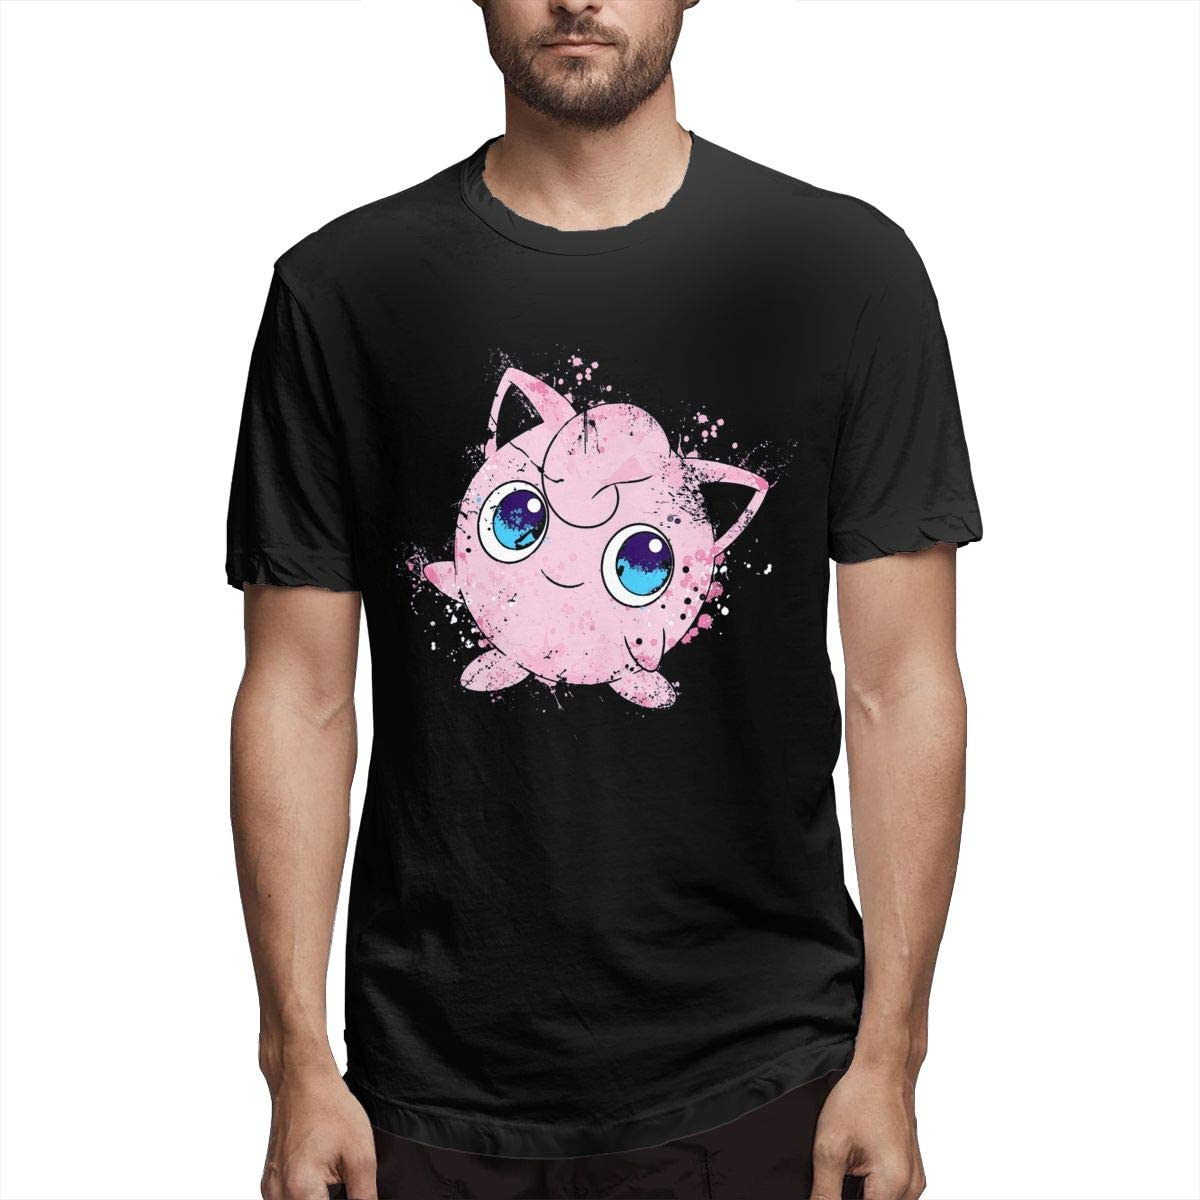 ERDONE Poke Jigglypuff Splatter Paint Mens Tee Fashion Short Sleeve T-Shirt Black